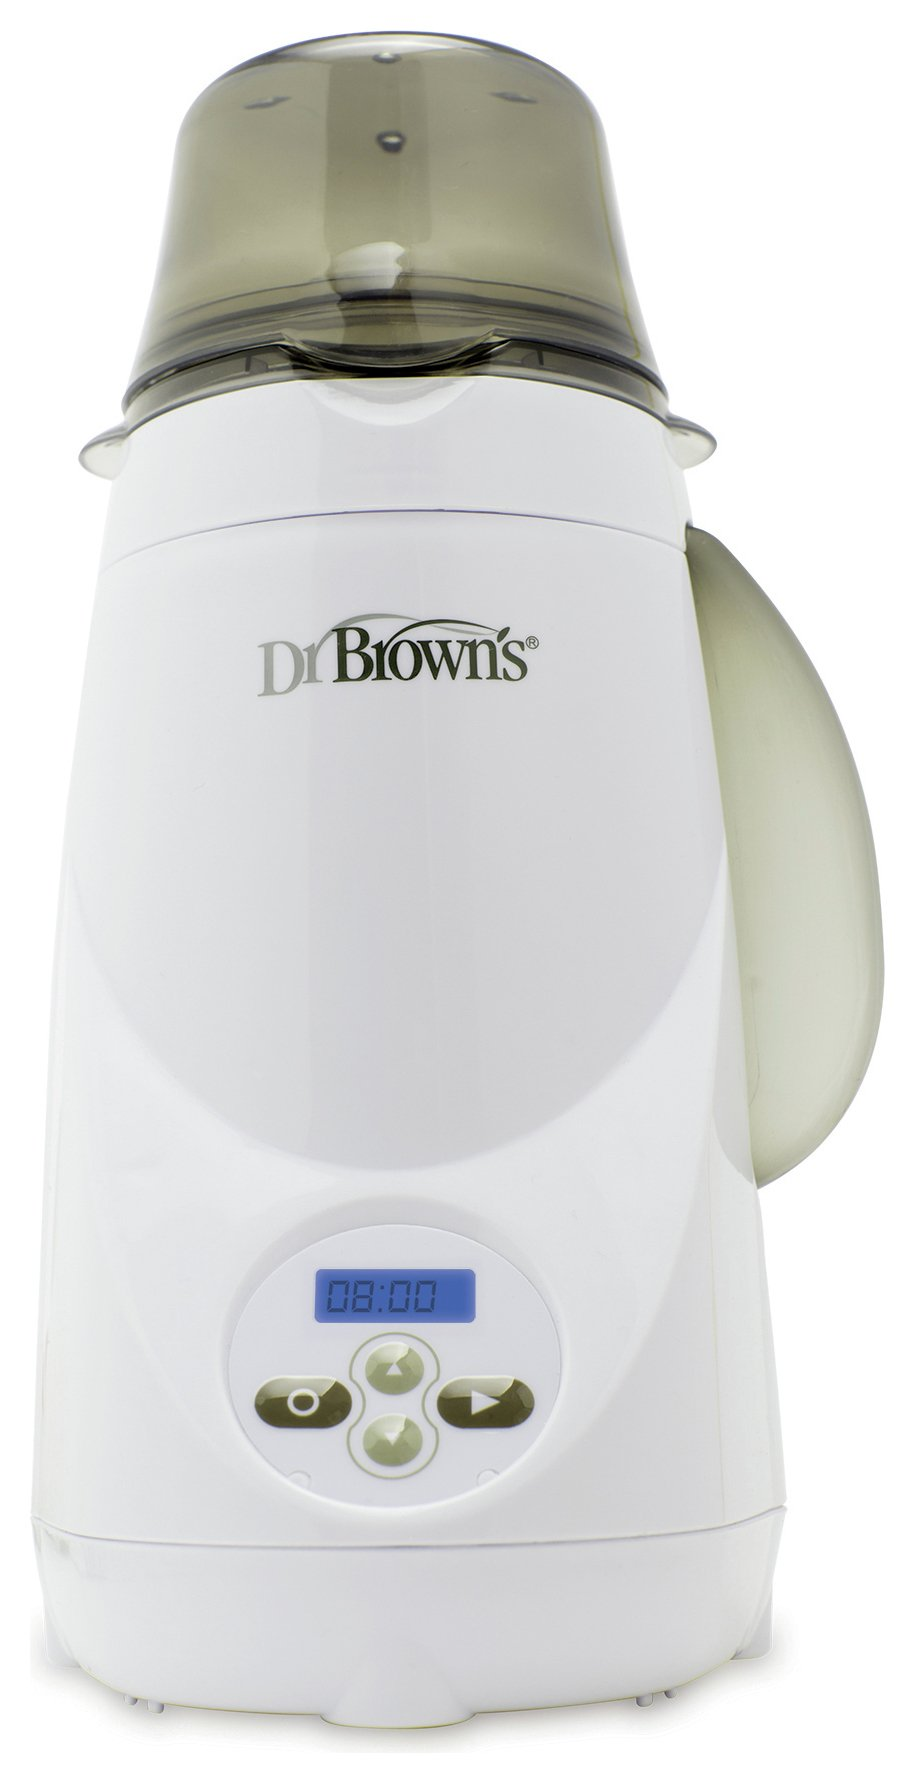 Image of Dr Brown's - Deluxe Bottle Warmer